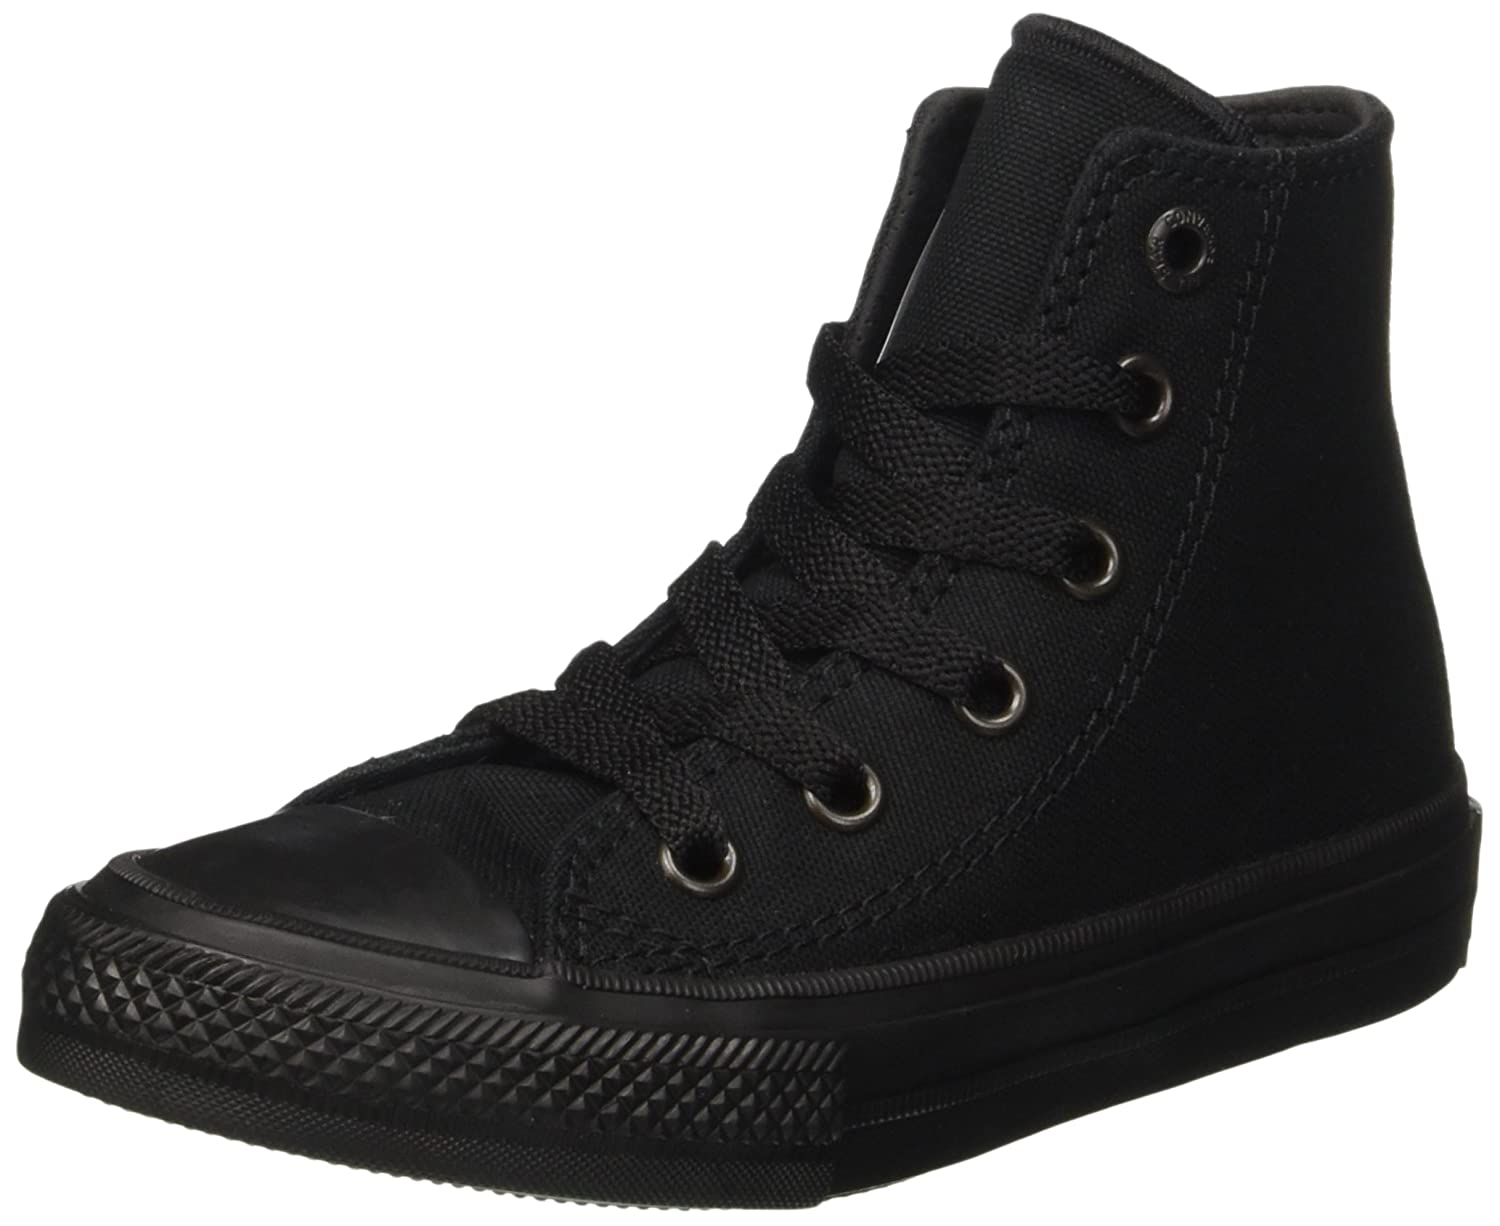 d7101a2d0c1e Amazon.com | Converse Chuck Taylor All Star Ii Hi Sneaker Kid's Shoes Size  2 Black | Fashion Sneakers